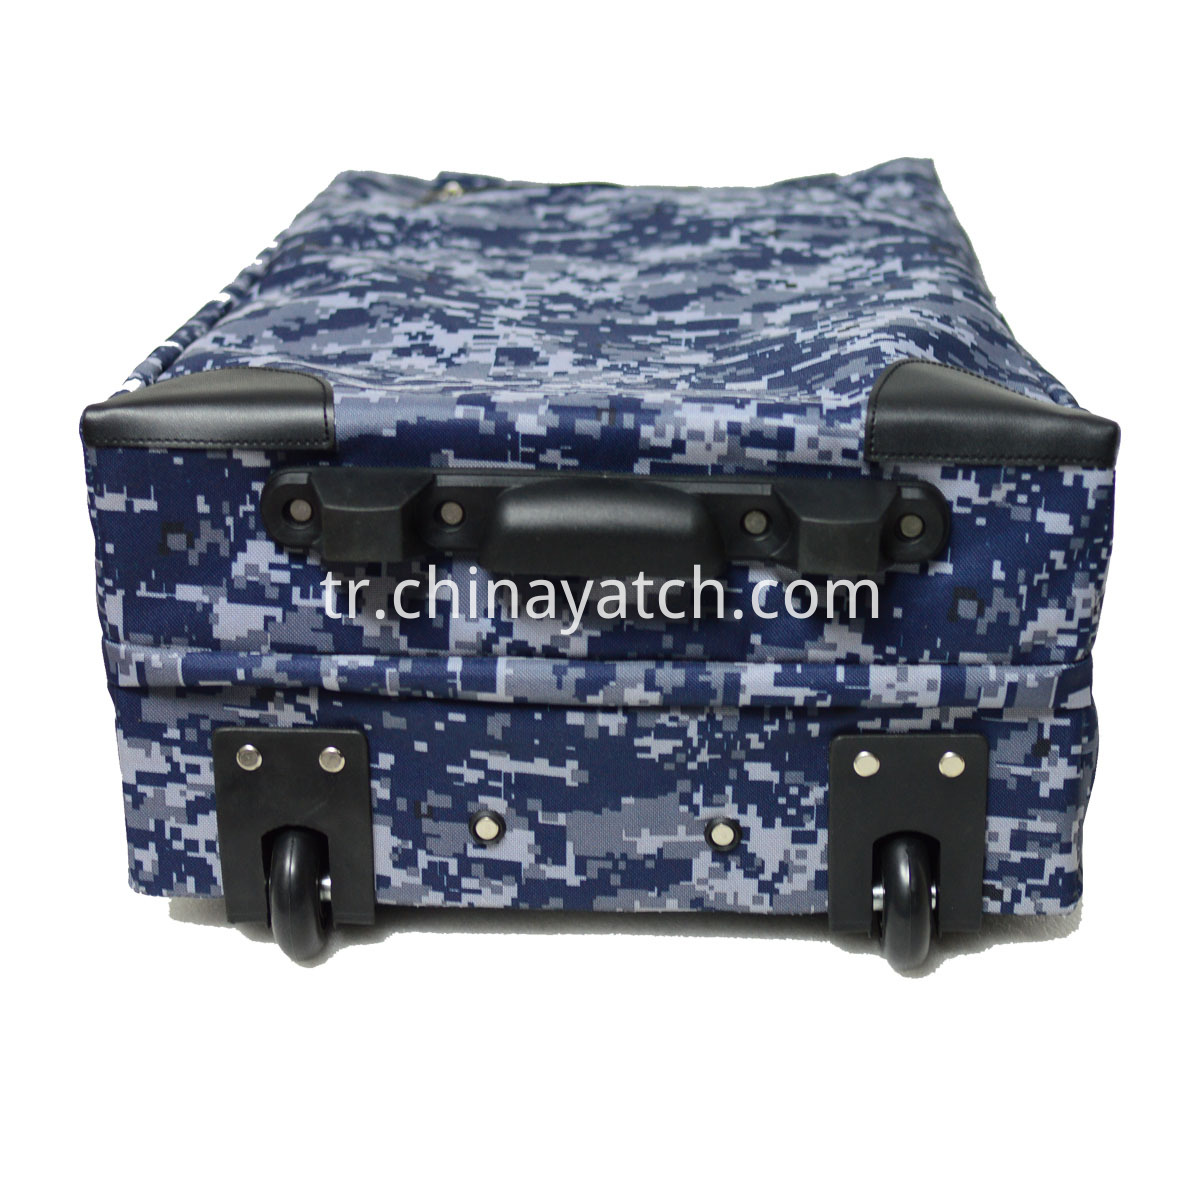 3 Pieces Trolley Case